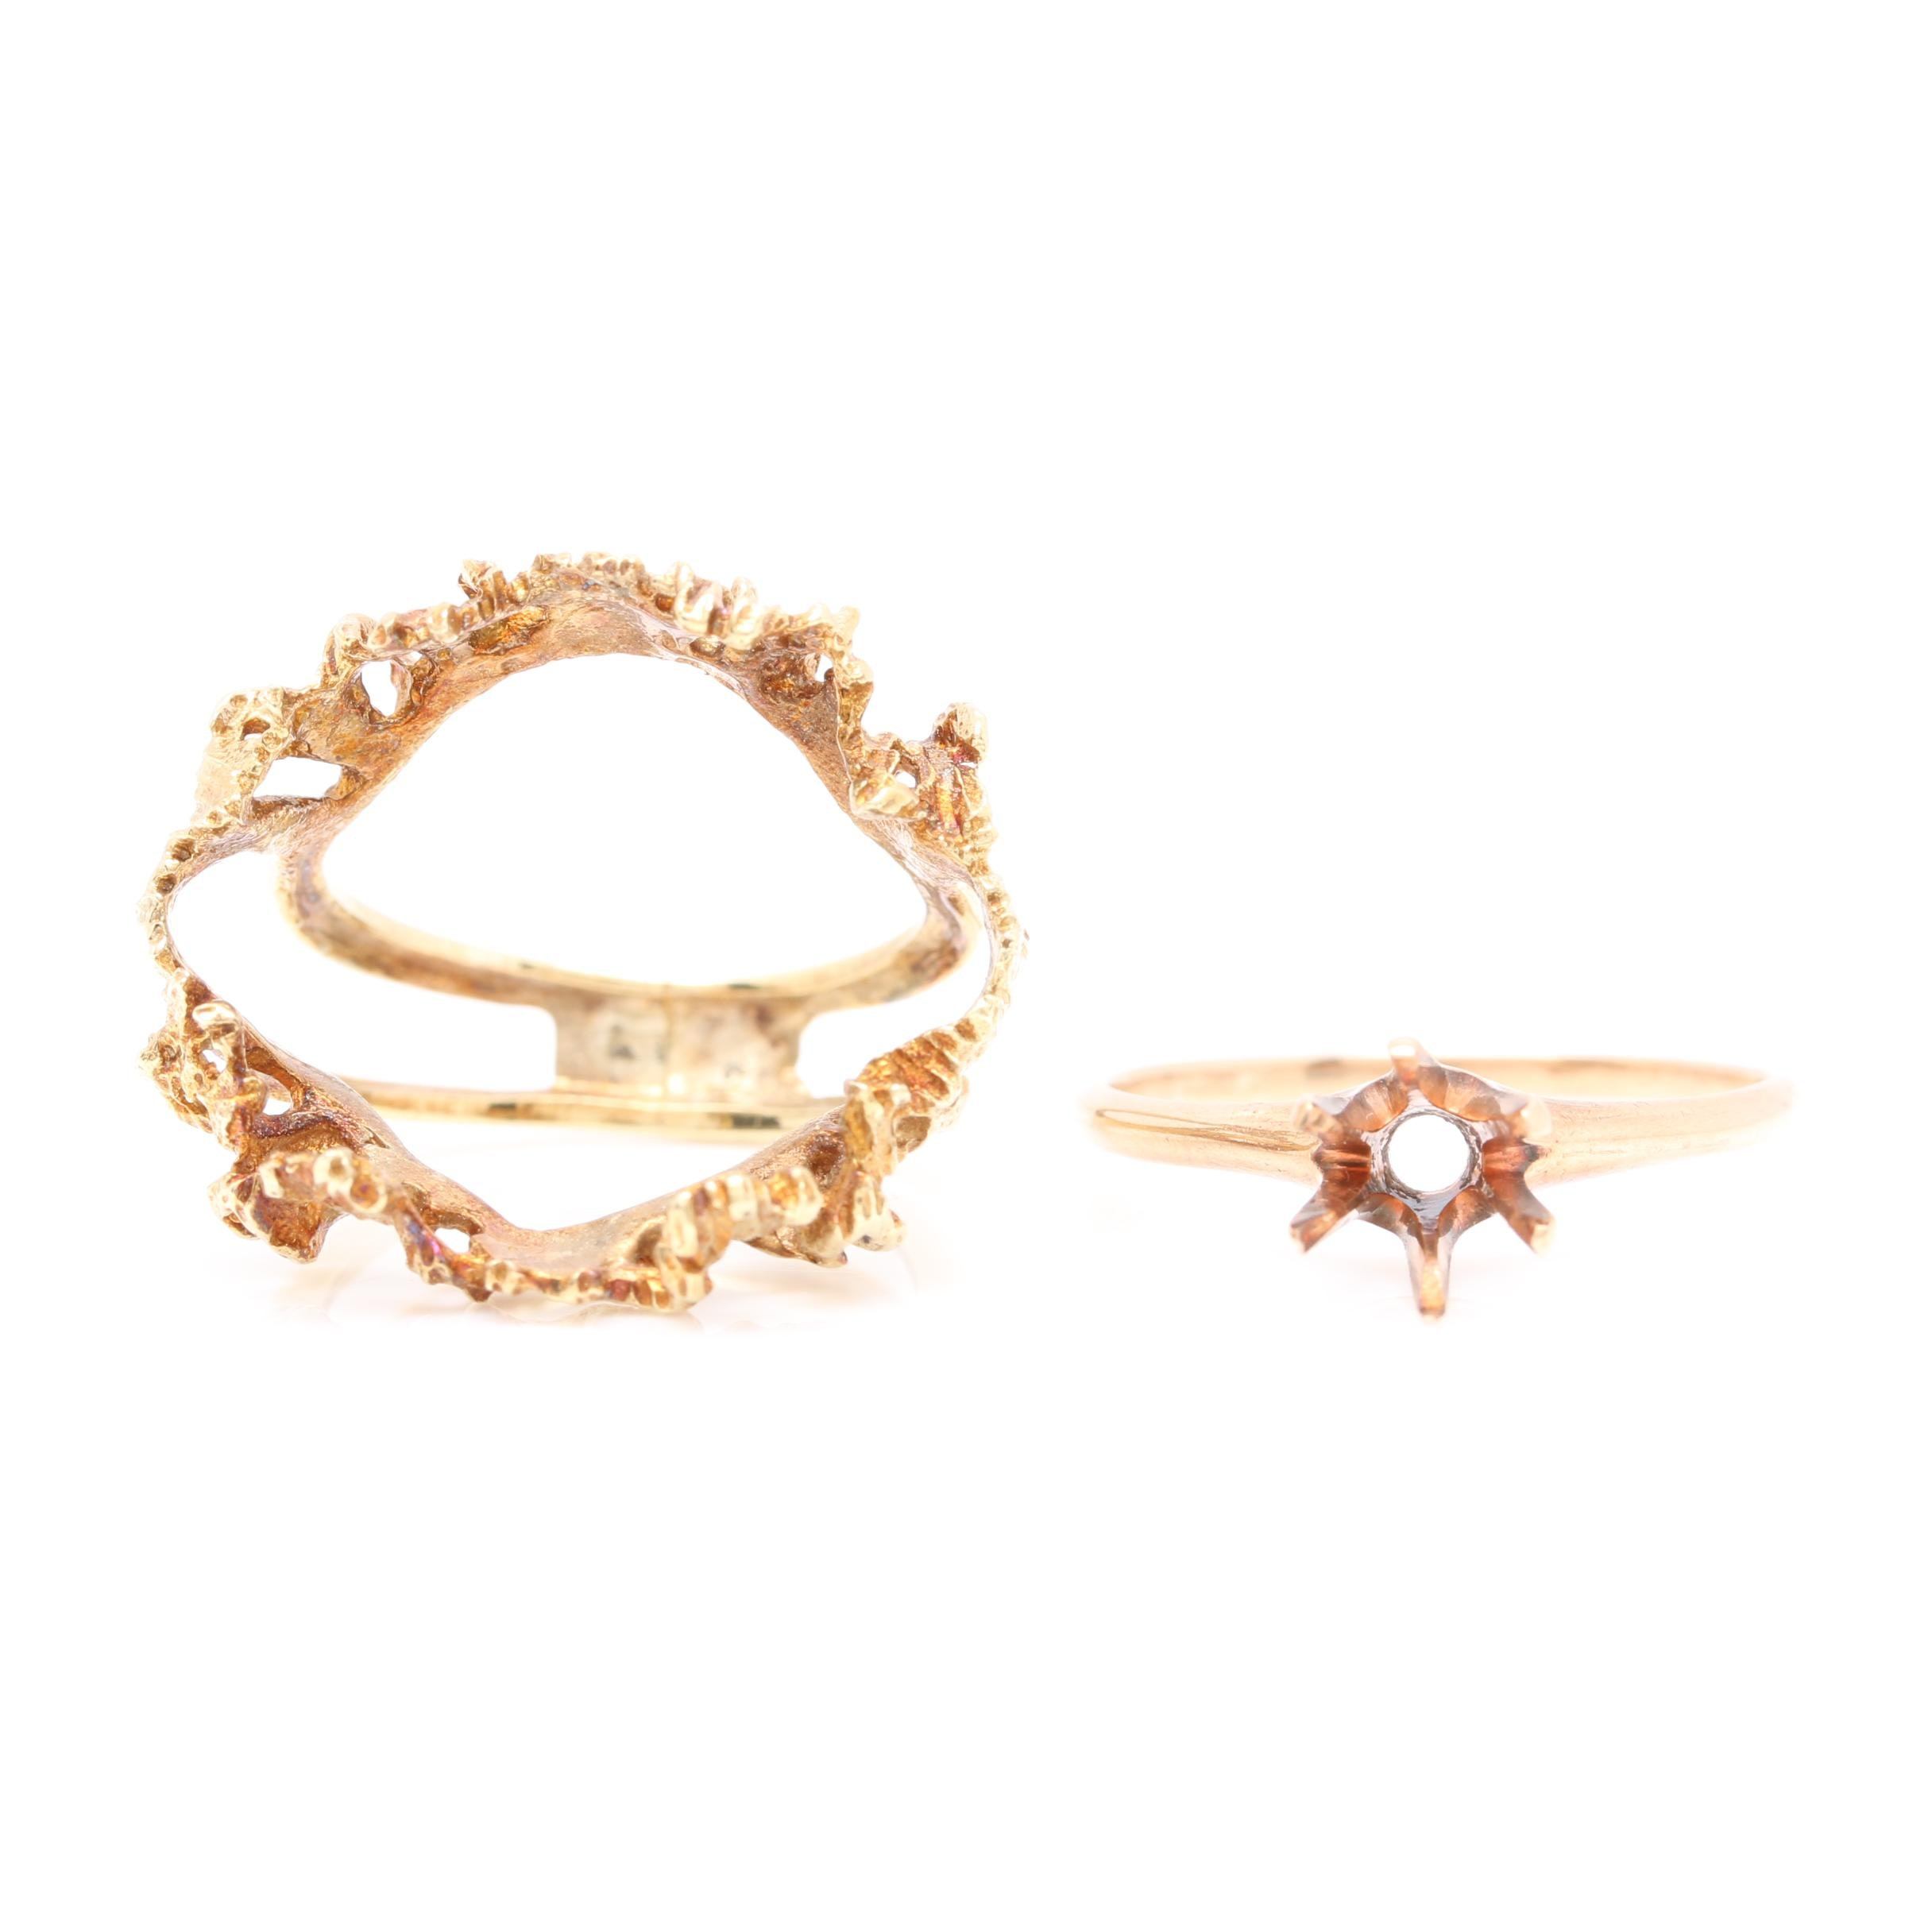 14K Yellow Gold Ring Guard and 10K Yellow Gold Solitaire Mounting